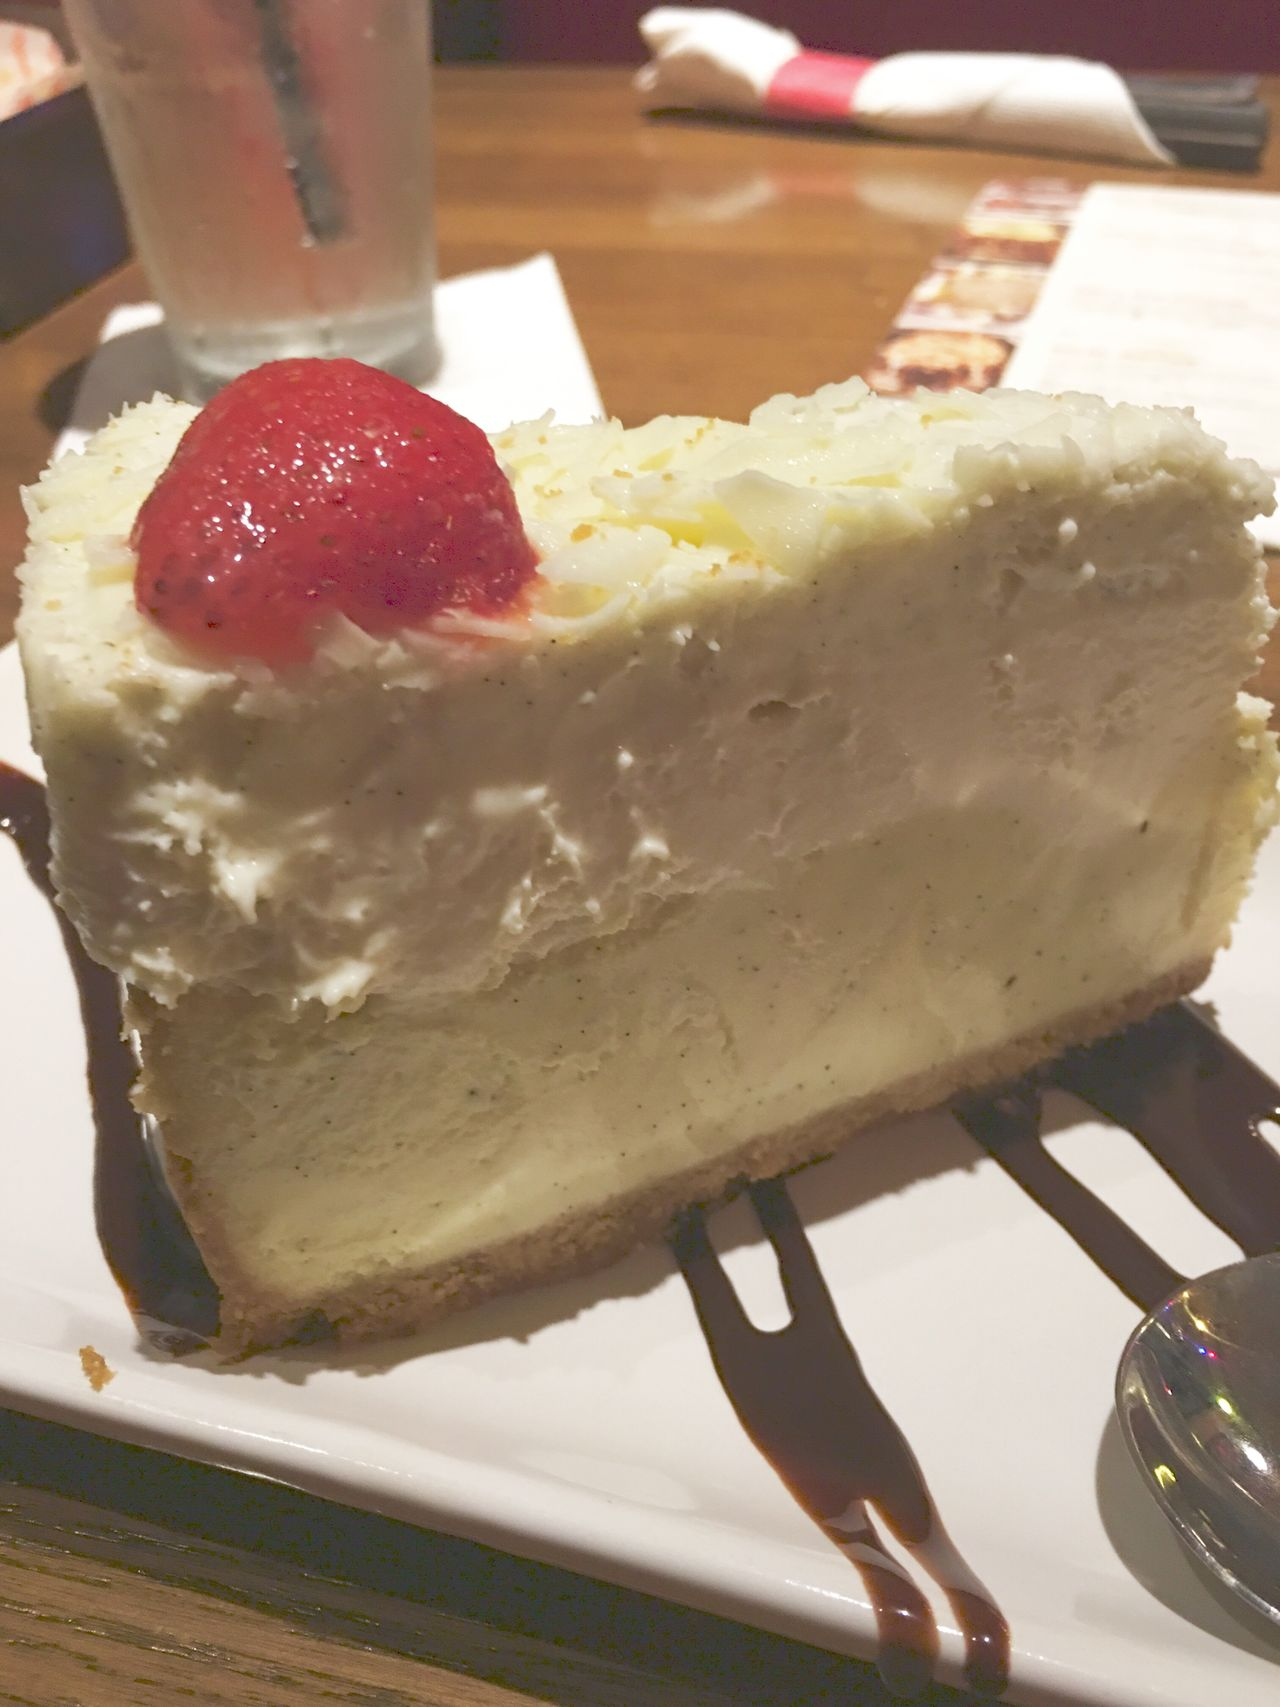 Vanilla Bean Cheesecake From TGI Friday's Near Arundel Mills Mall In Maryland. Sweet Food Food Dessert Indulgence Freshness Temptation Ready-to-eat Unhealthy Eating